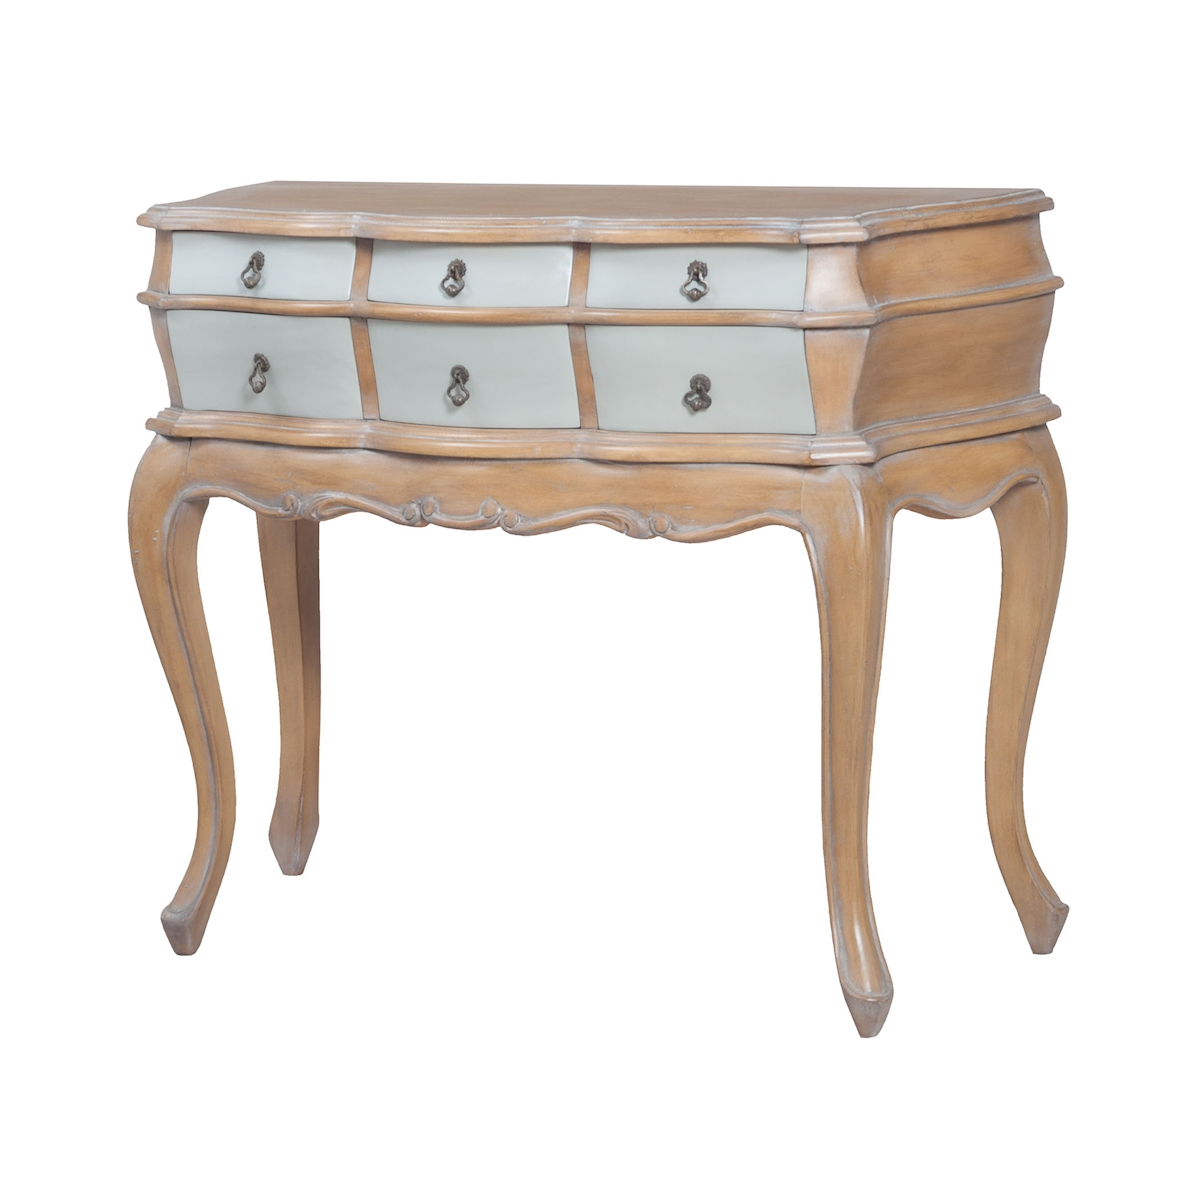 Sullivan Console in Artisan Stain And Whitewash 7115555 | ELK Home